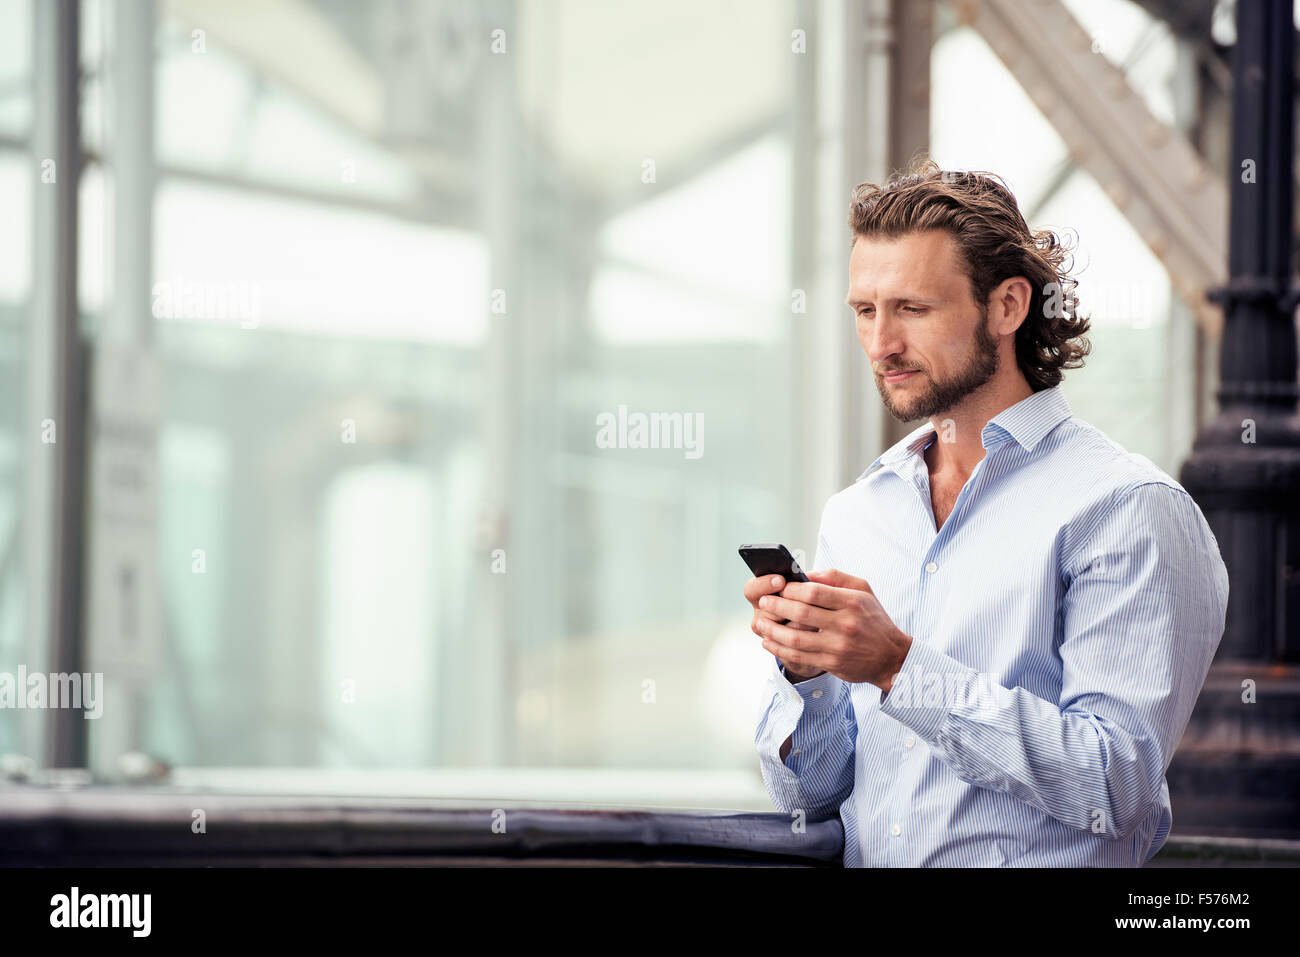 A man standing outdoors on the street, checking his cell phone. - Stock Image